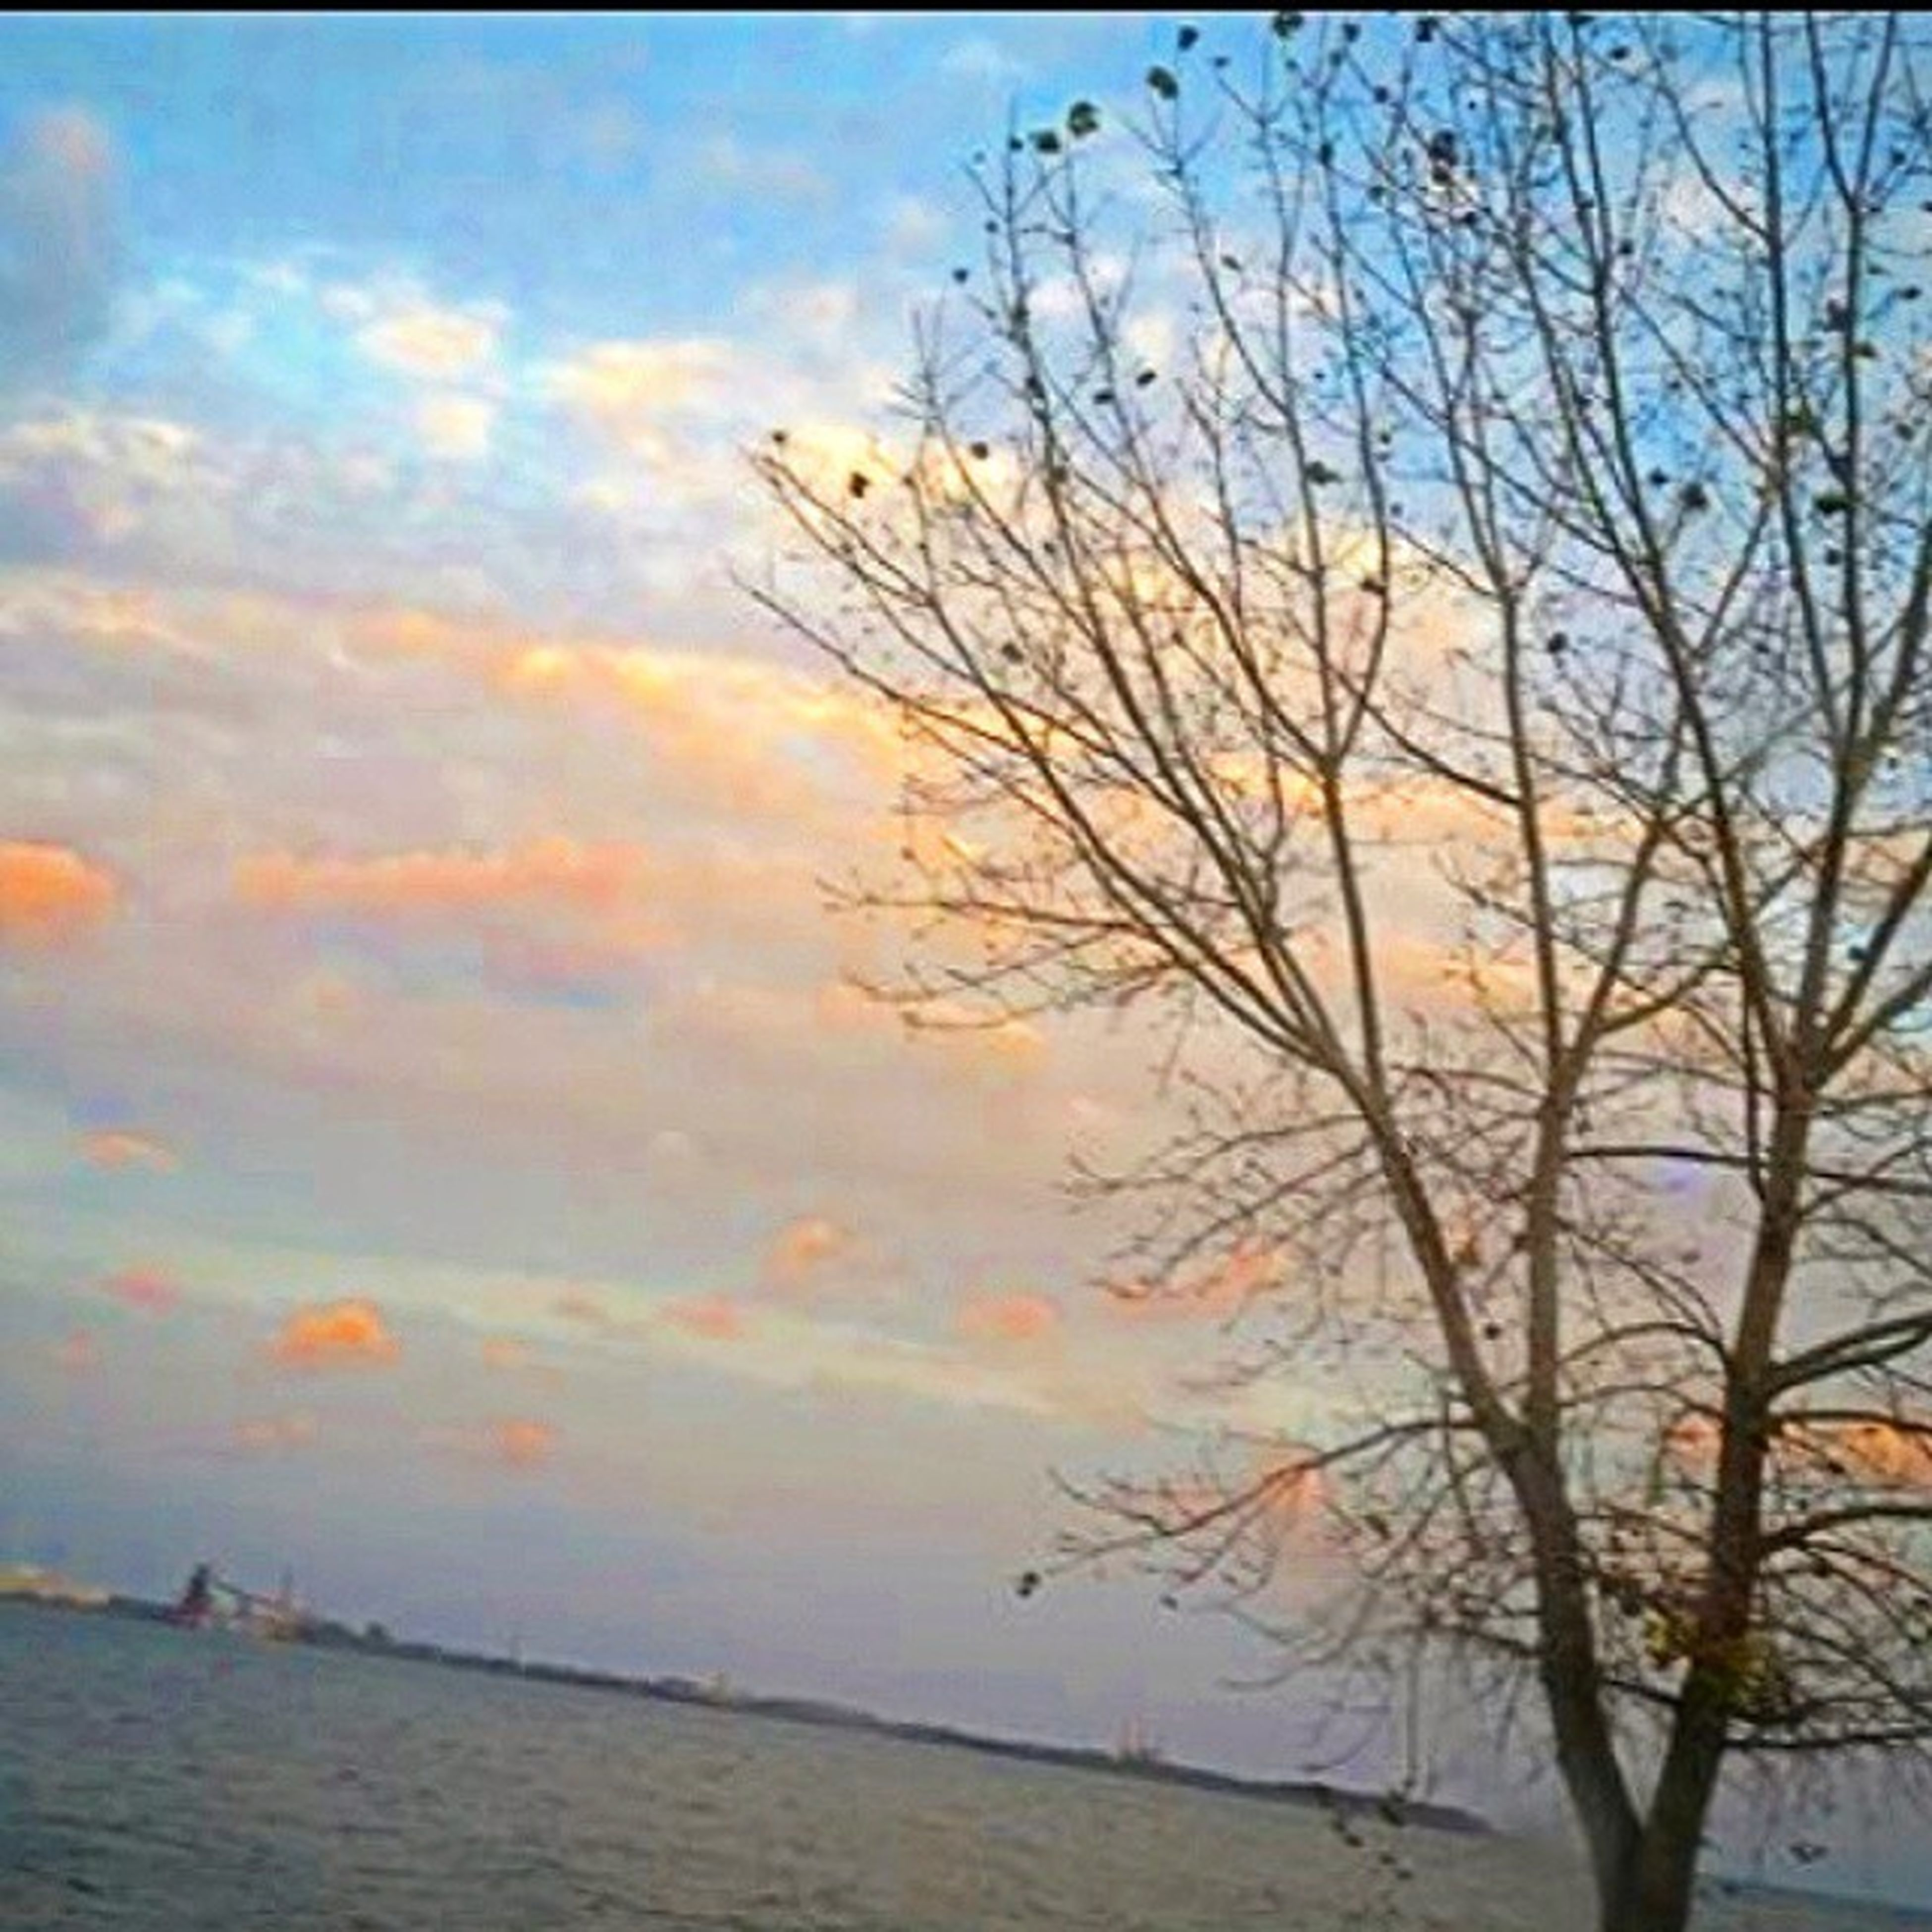 sky, tranquility, tranquil scene, scenics, water, beauty in nature, tree, sunset, cloud - sky, bare tree, nature, branch, cloud, sea, idyllic, cloudy, lake, waterfront, horizon over water, outdoors